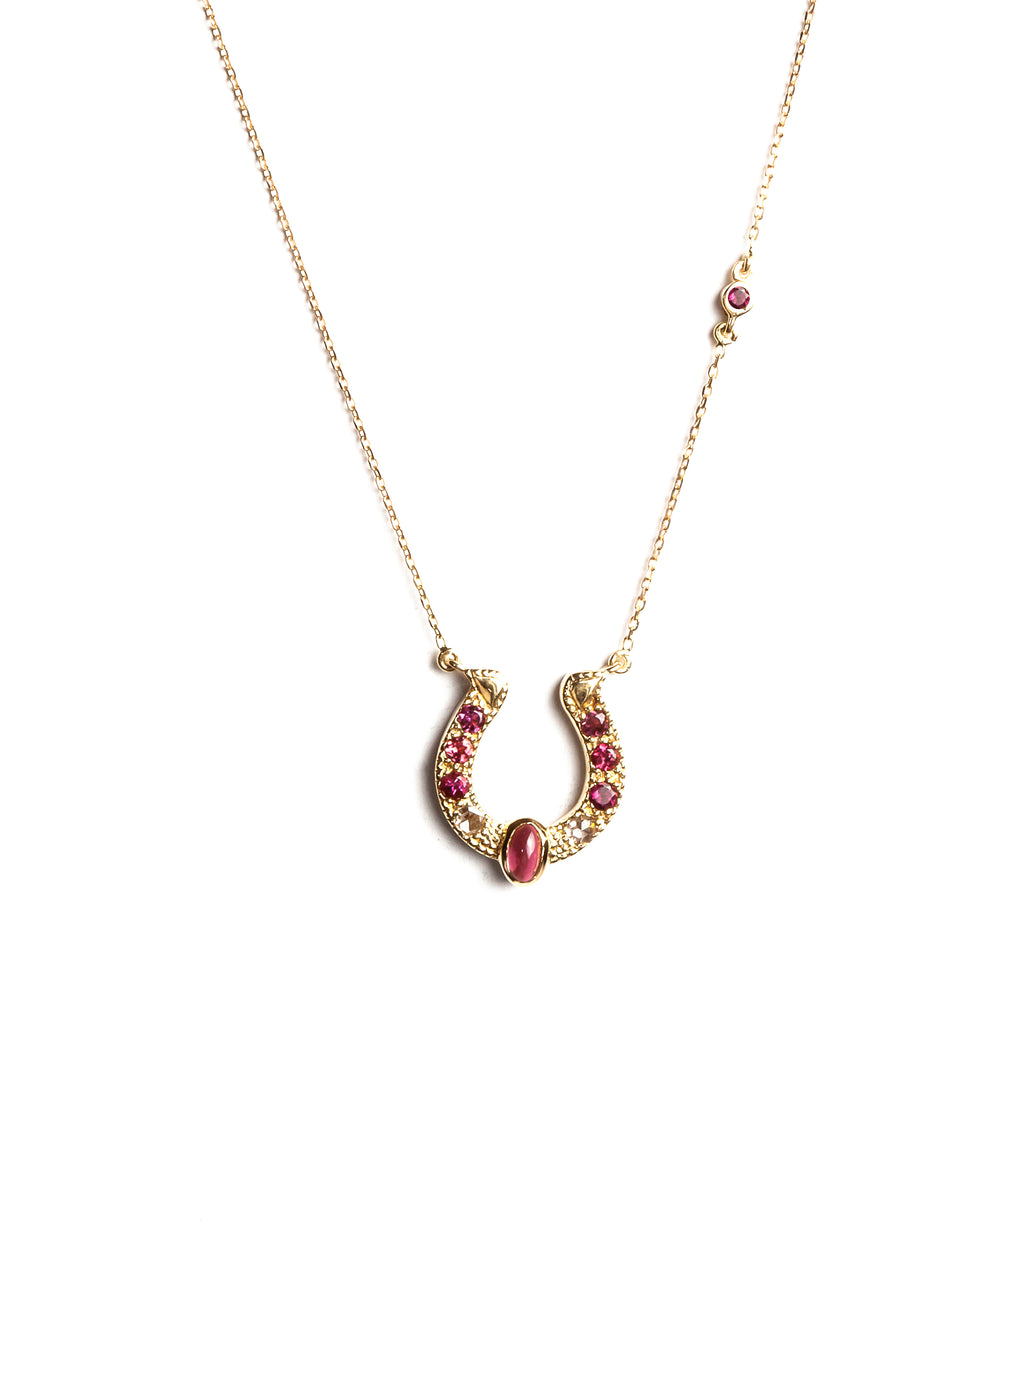 Horseshoe Necklace with Pink Tourmalines, Diamonds and Cabochon Accent